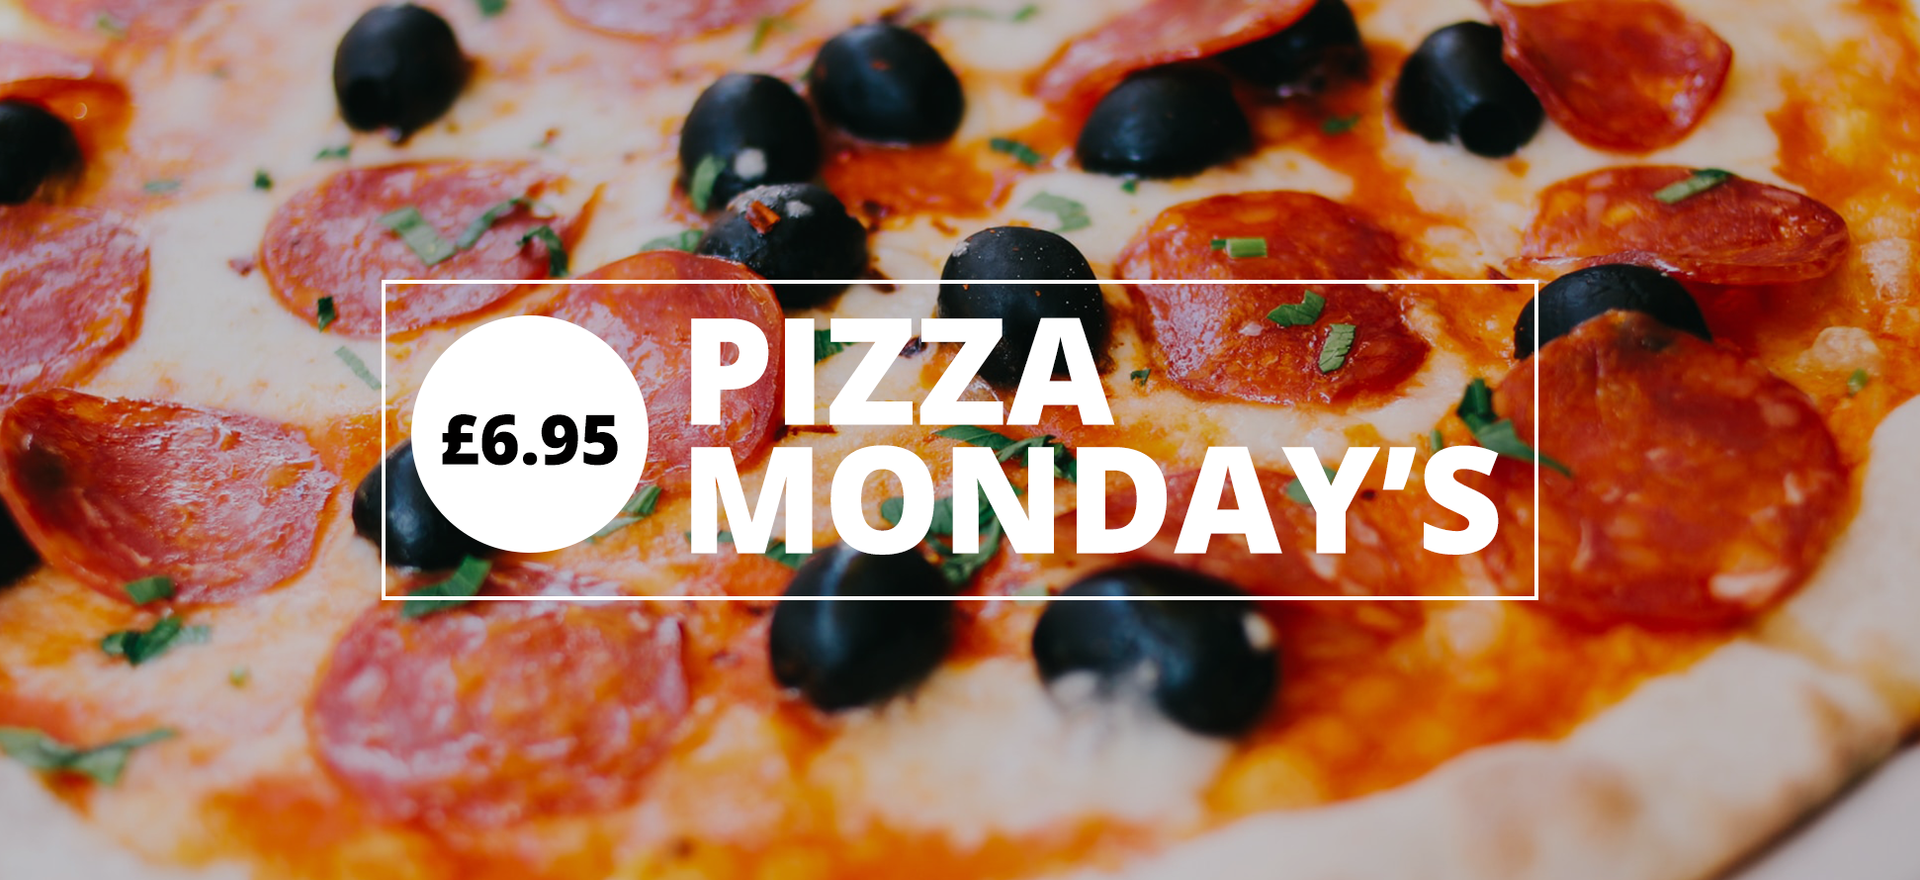 Pizza Monday's - £6.95